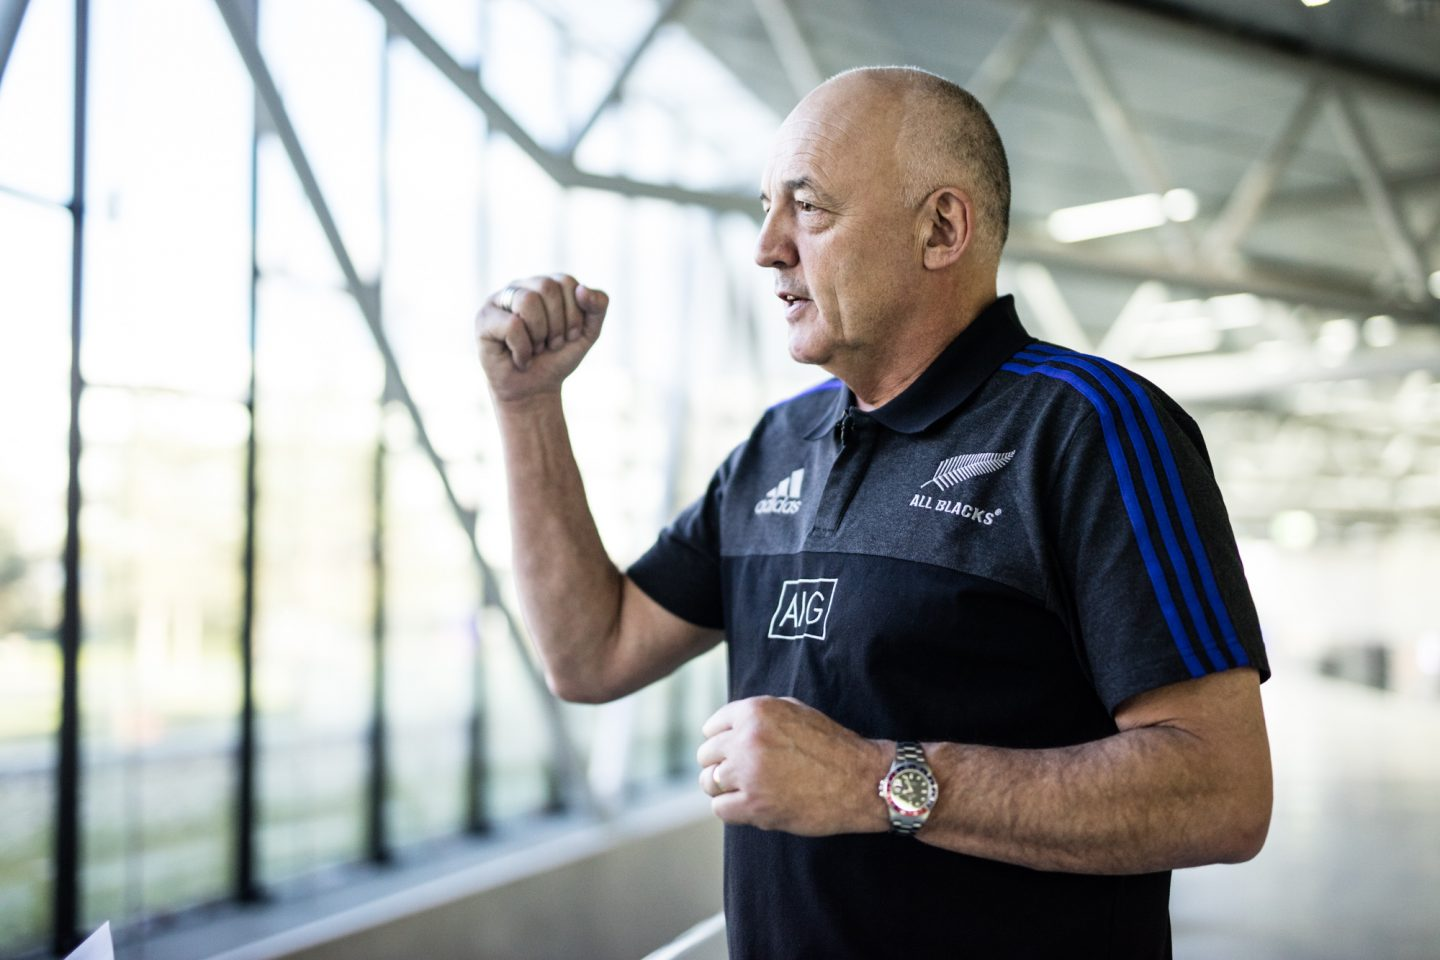 Man gesturing during interview adidas All Blacks Mental Coach Gilbert Enoka talking mental strength vulnerability team spirit